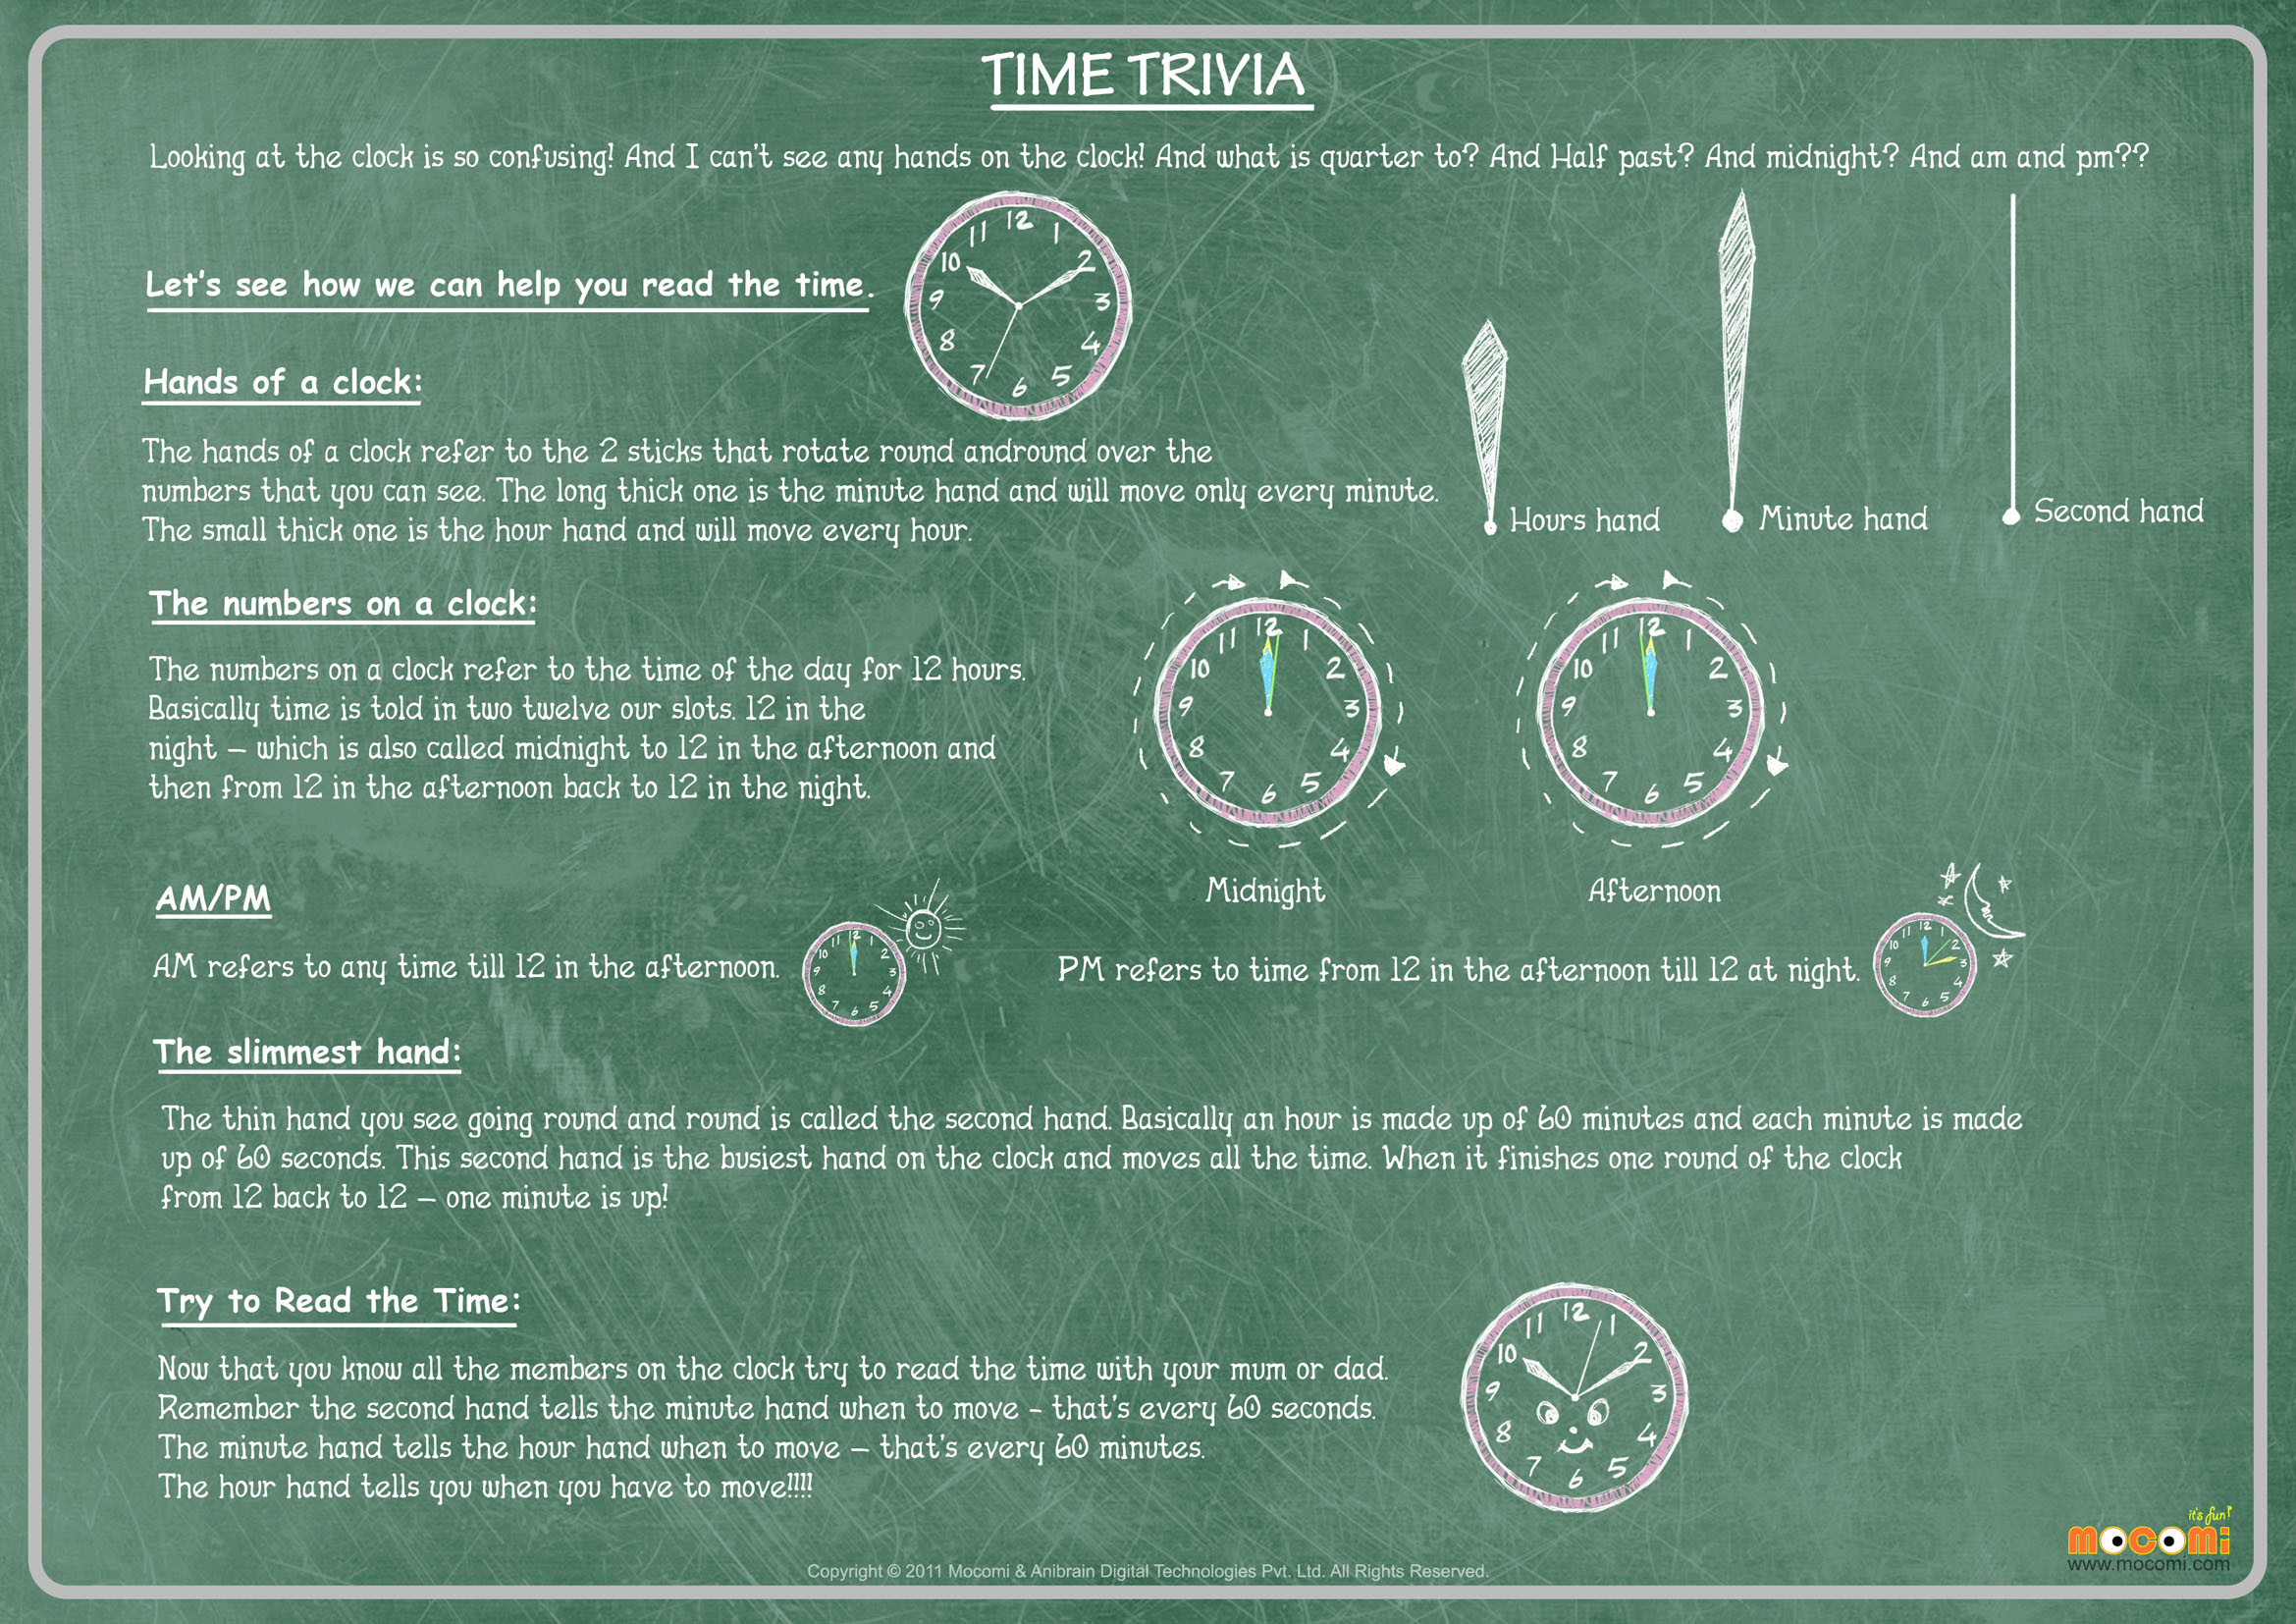 Time Trivia – Facts About Time